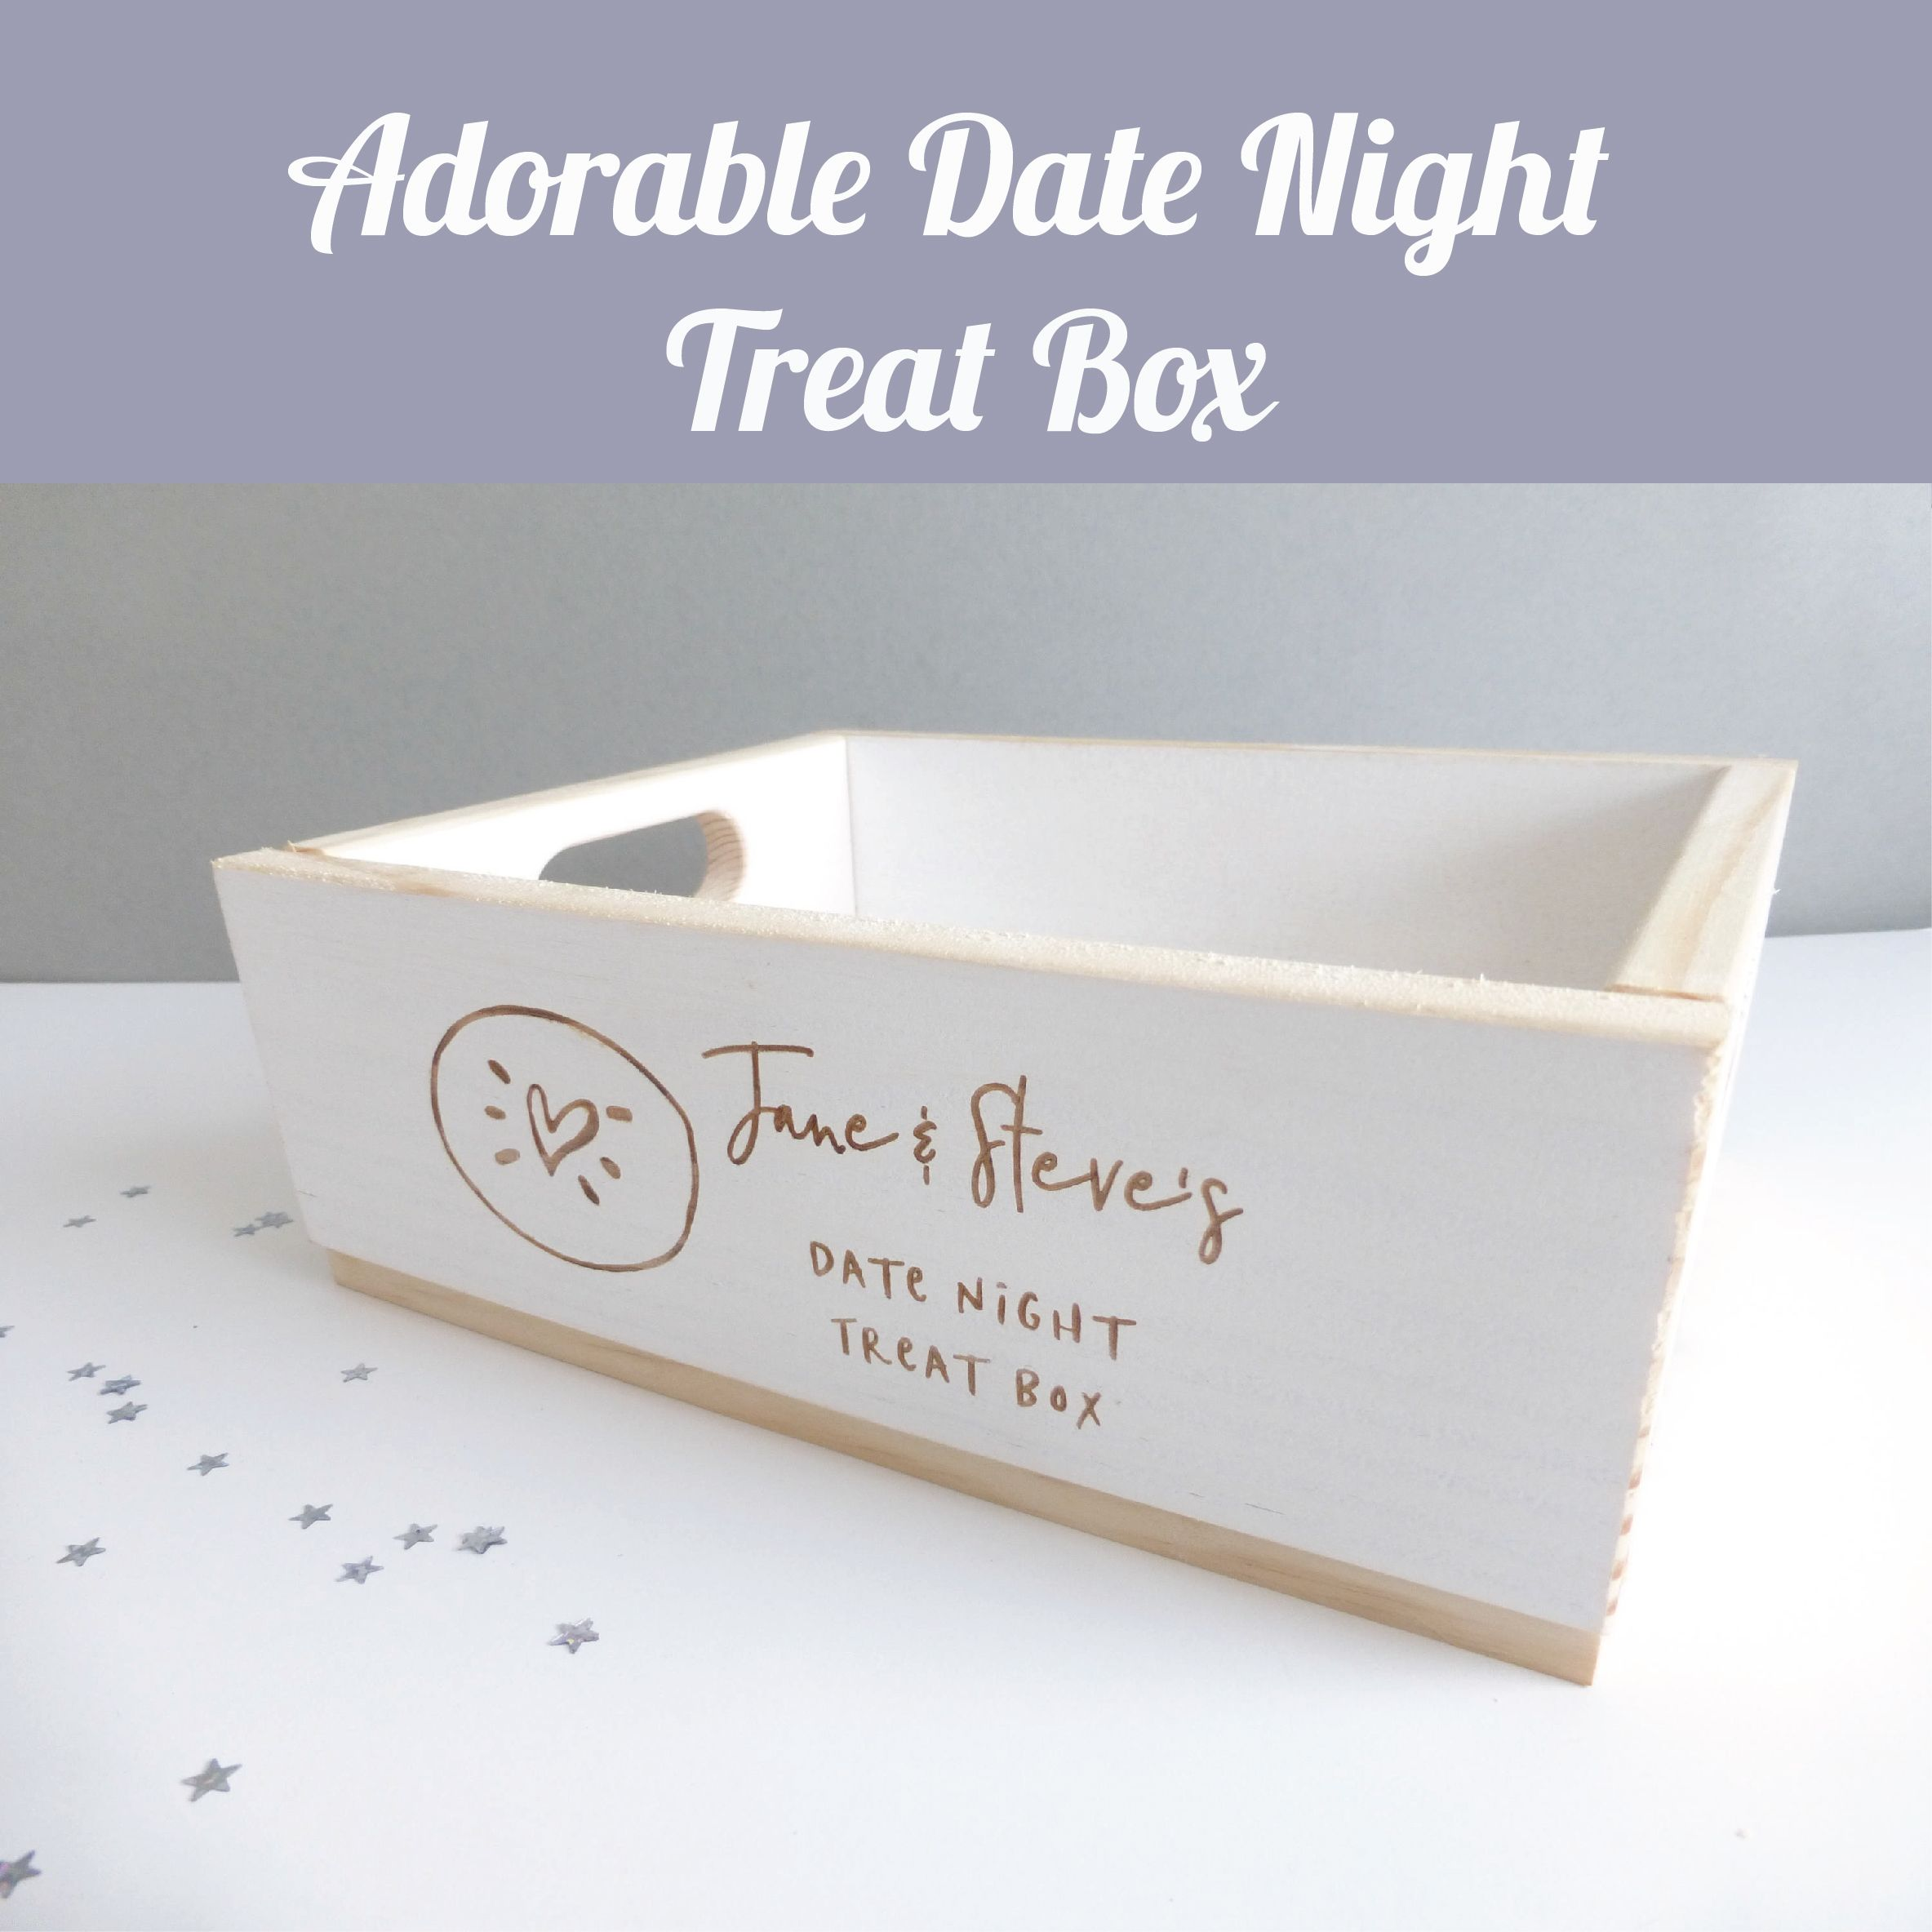 How adorable is this date night treat box?! I love it! Prefect for a ...